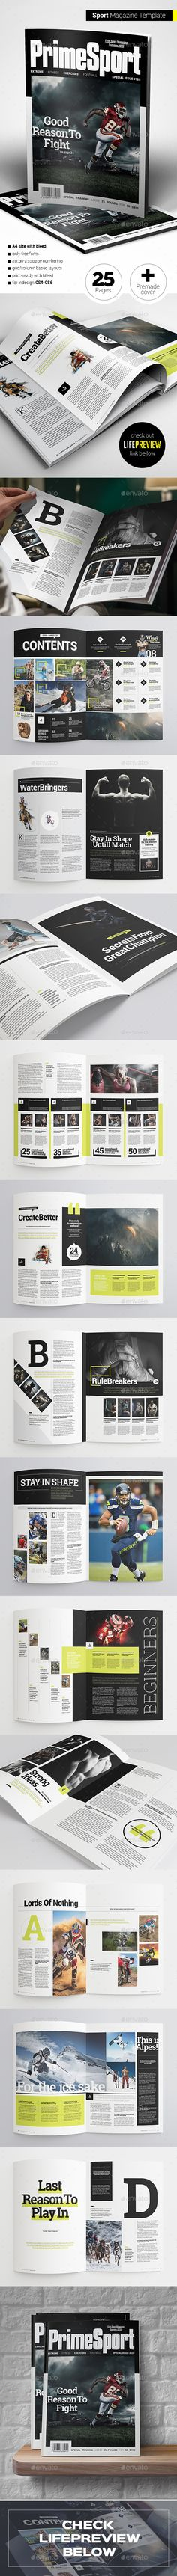 Sport Magazine — InDesign INDD #football magazine #sport • Available here → https://graphicriver.net/item/sport-magazine/15932541?ref=pxcr